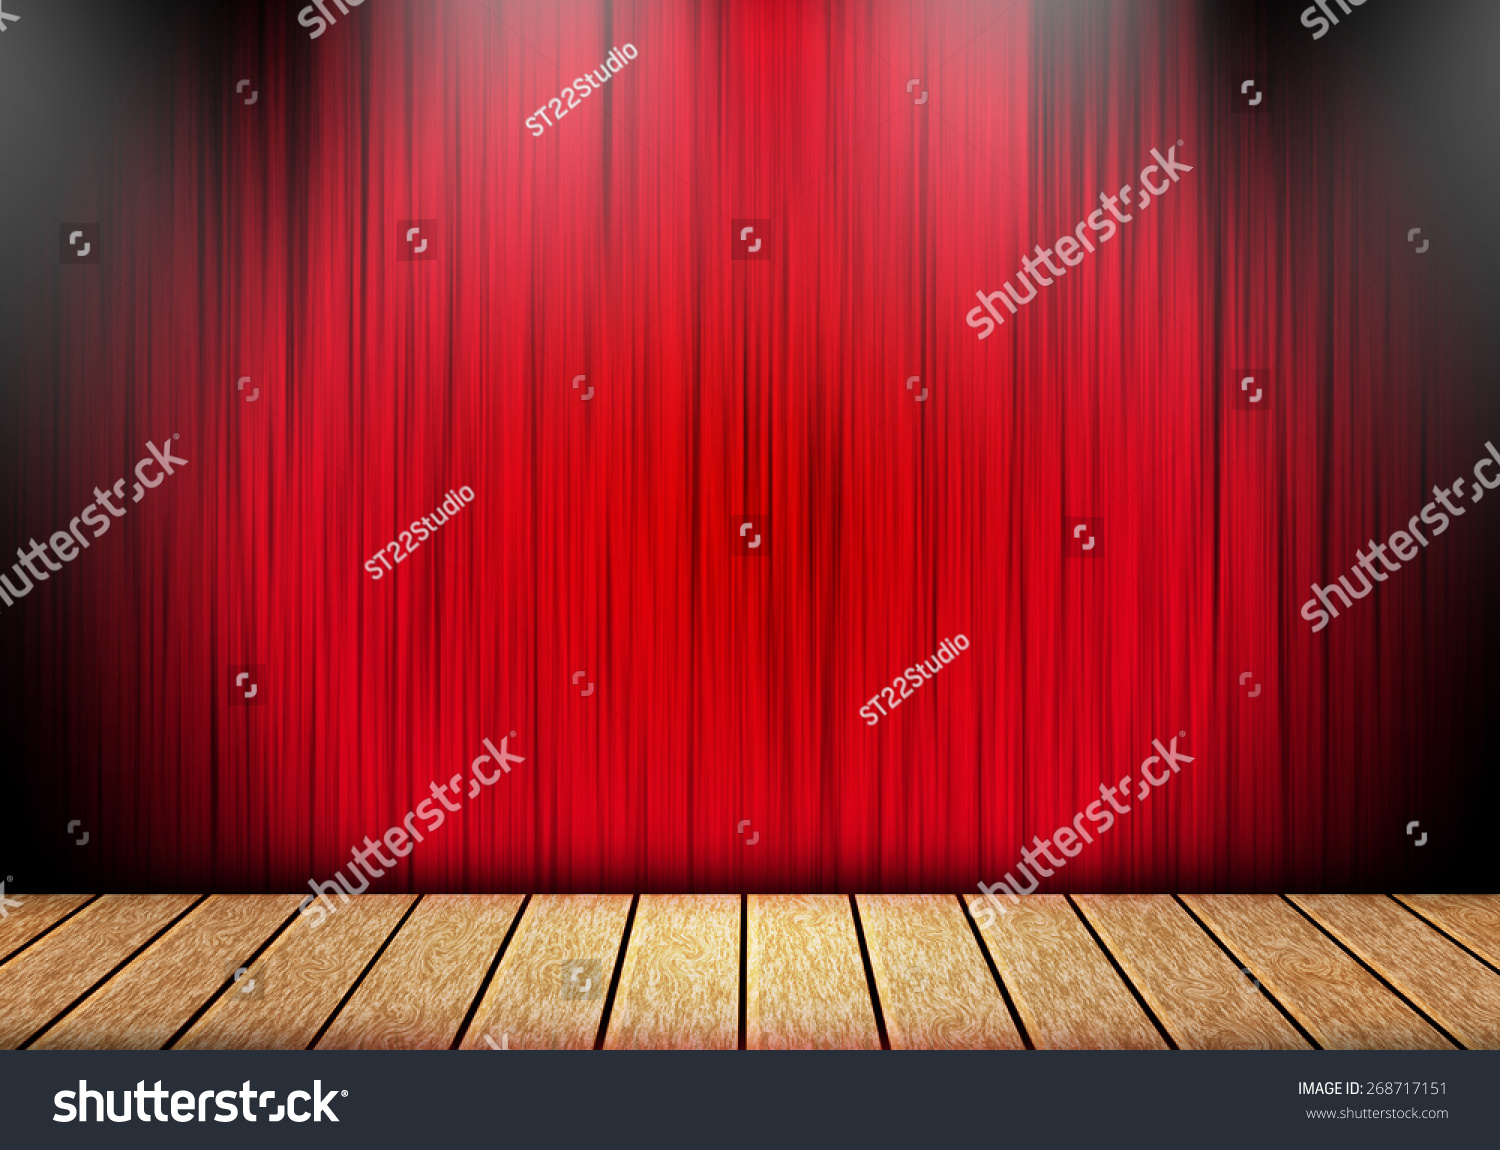 Red stage curtain with lights - Red Curtain And Wood Stage Background